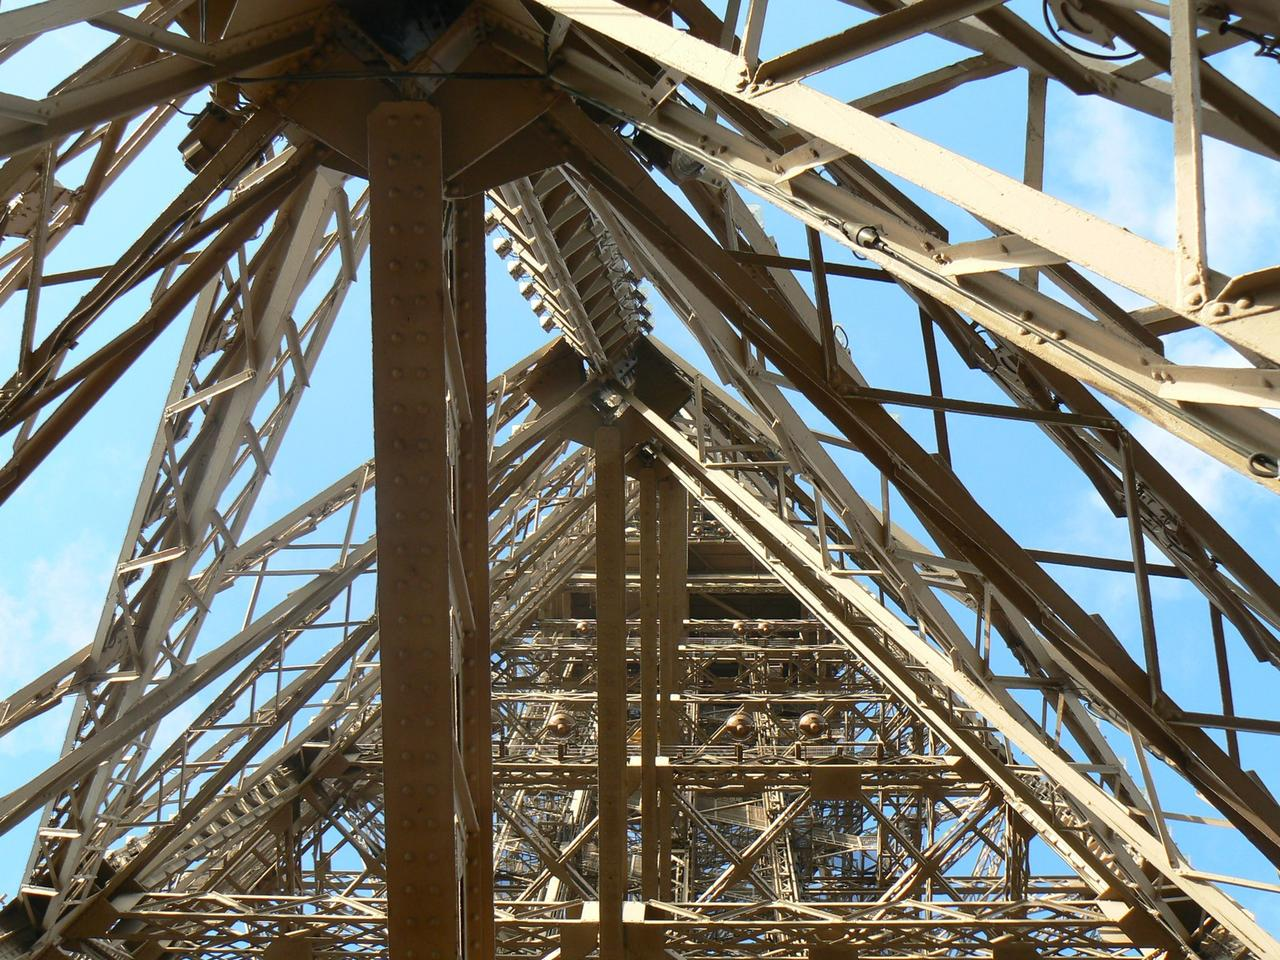 Eiffel-tower-003